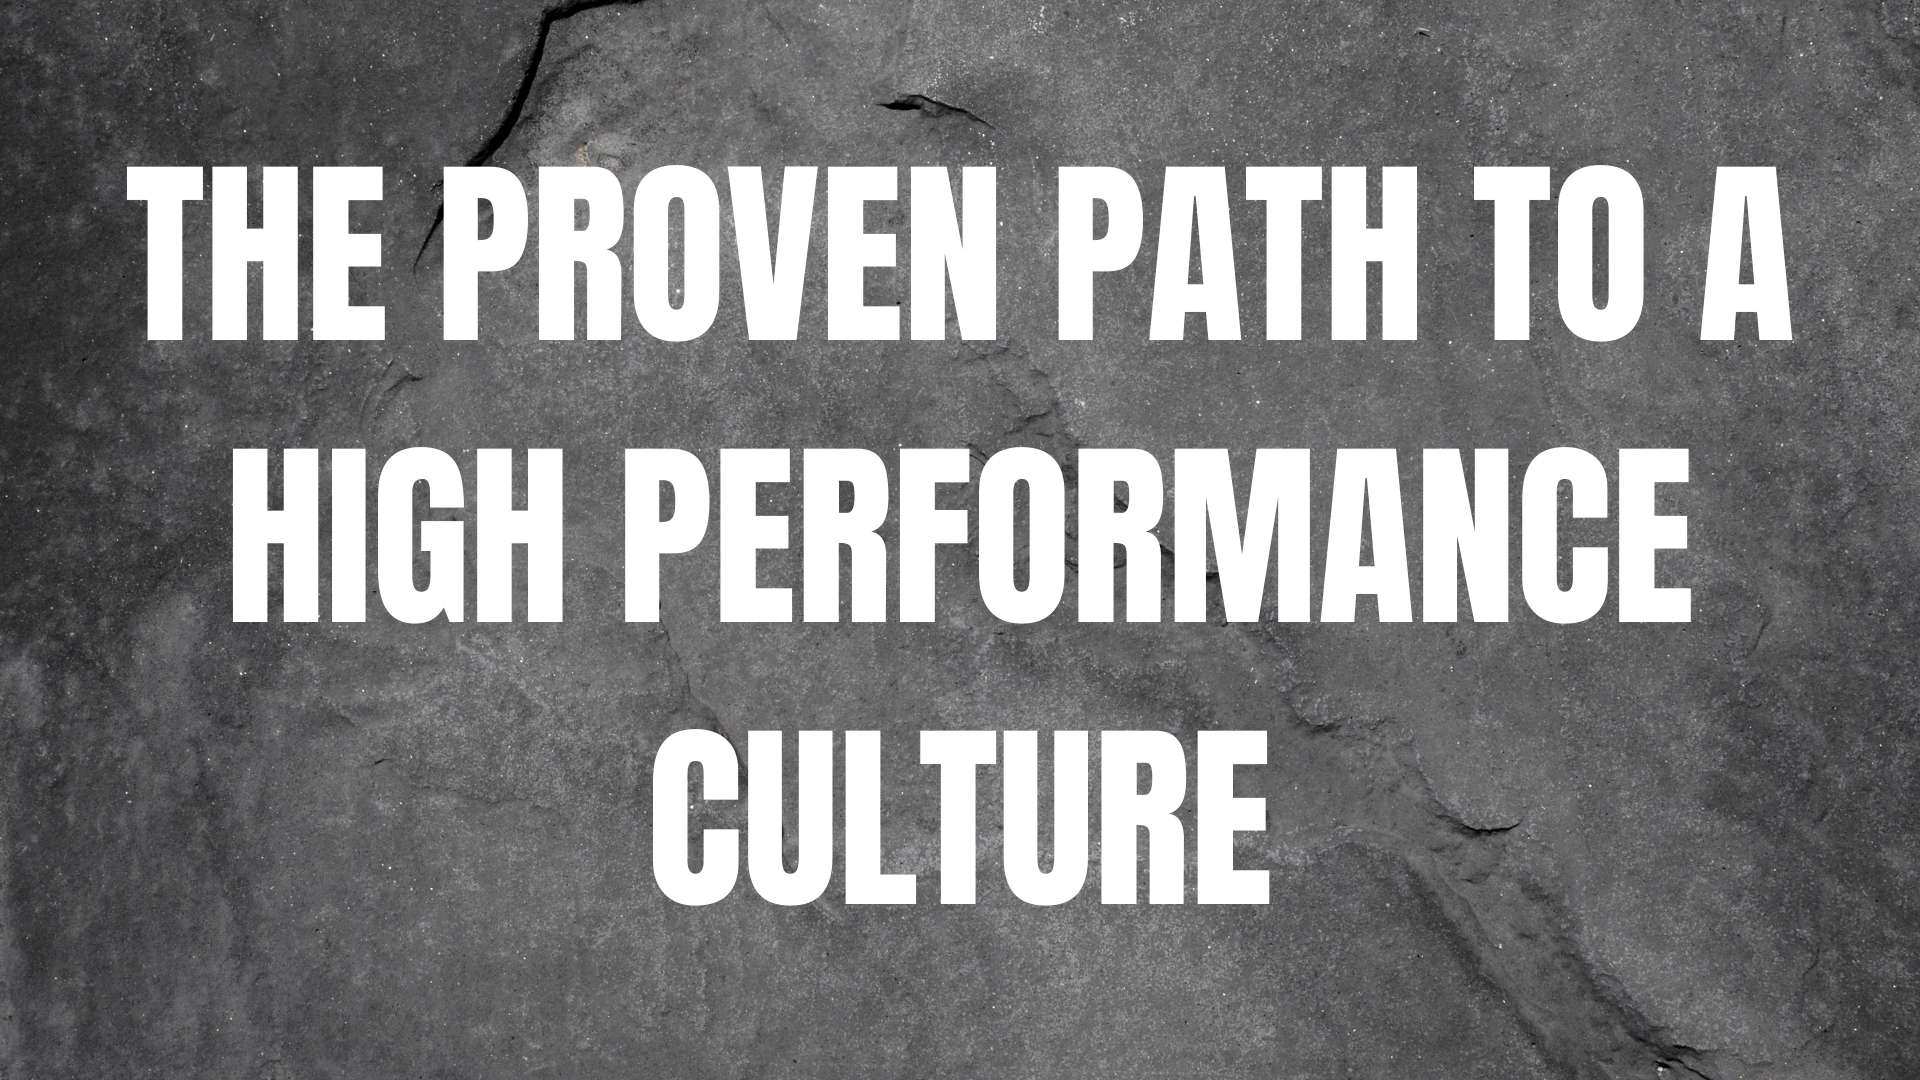 The proven path to a high performing culture